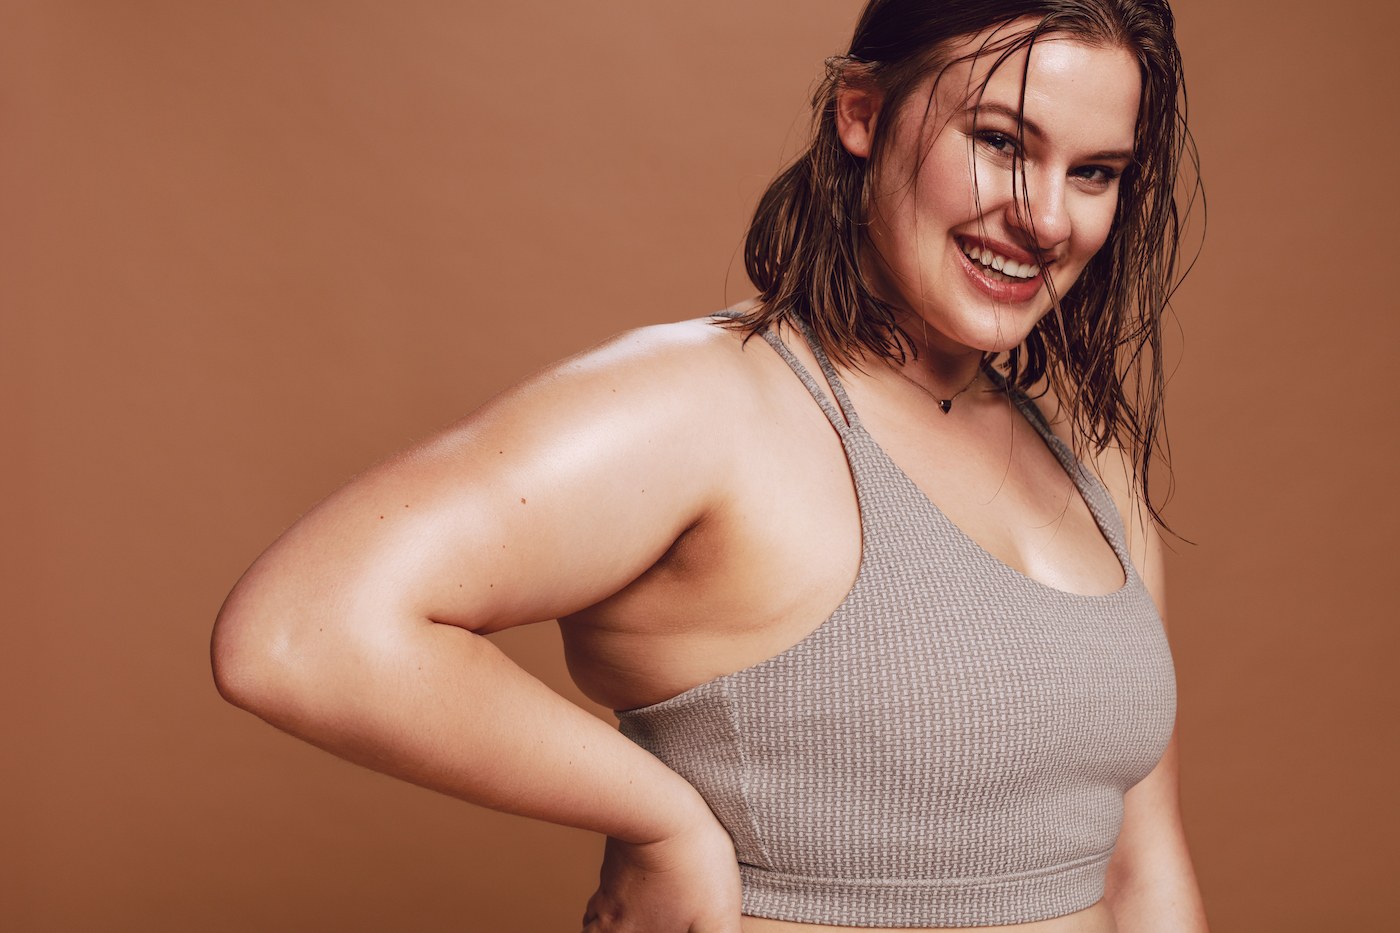 Thumbnail for Meet the Sports Bra Class of 2020, Featuring All the Best in Boob Technology